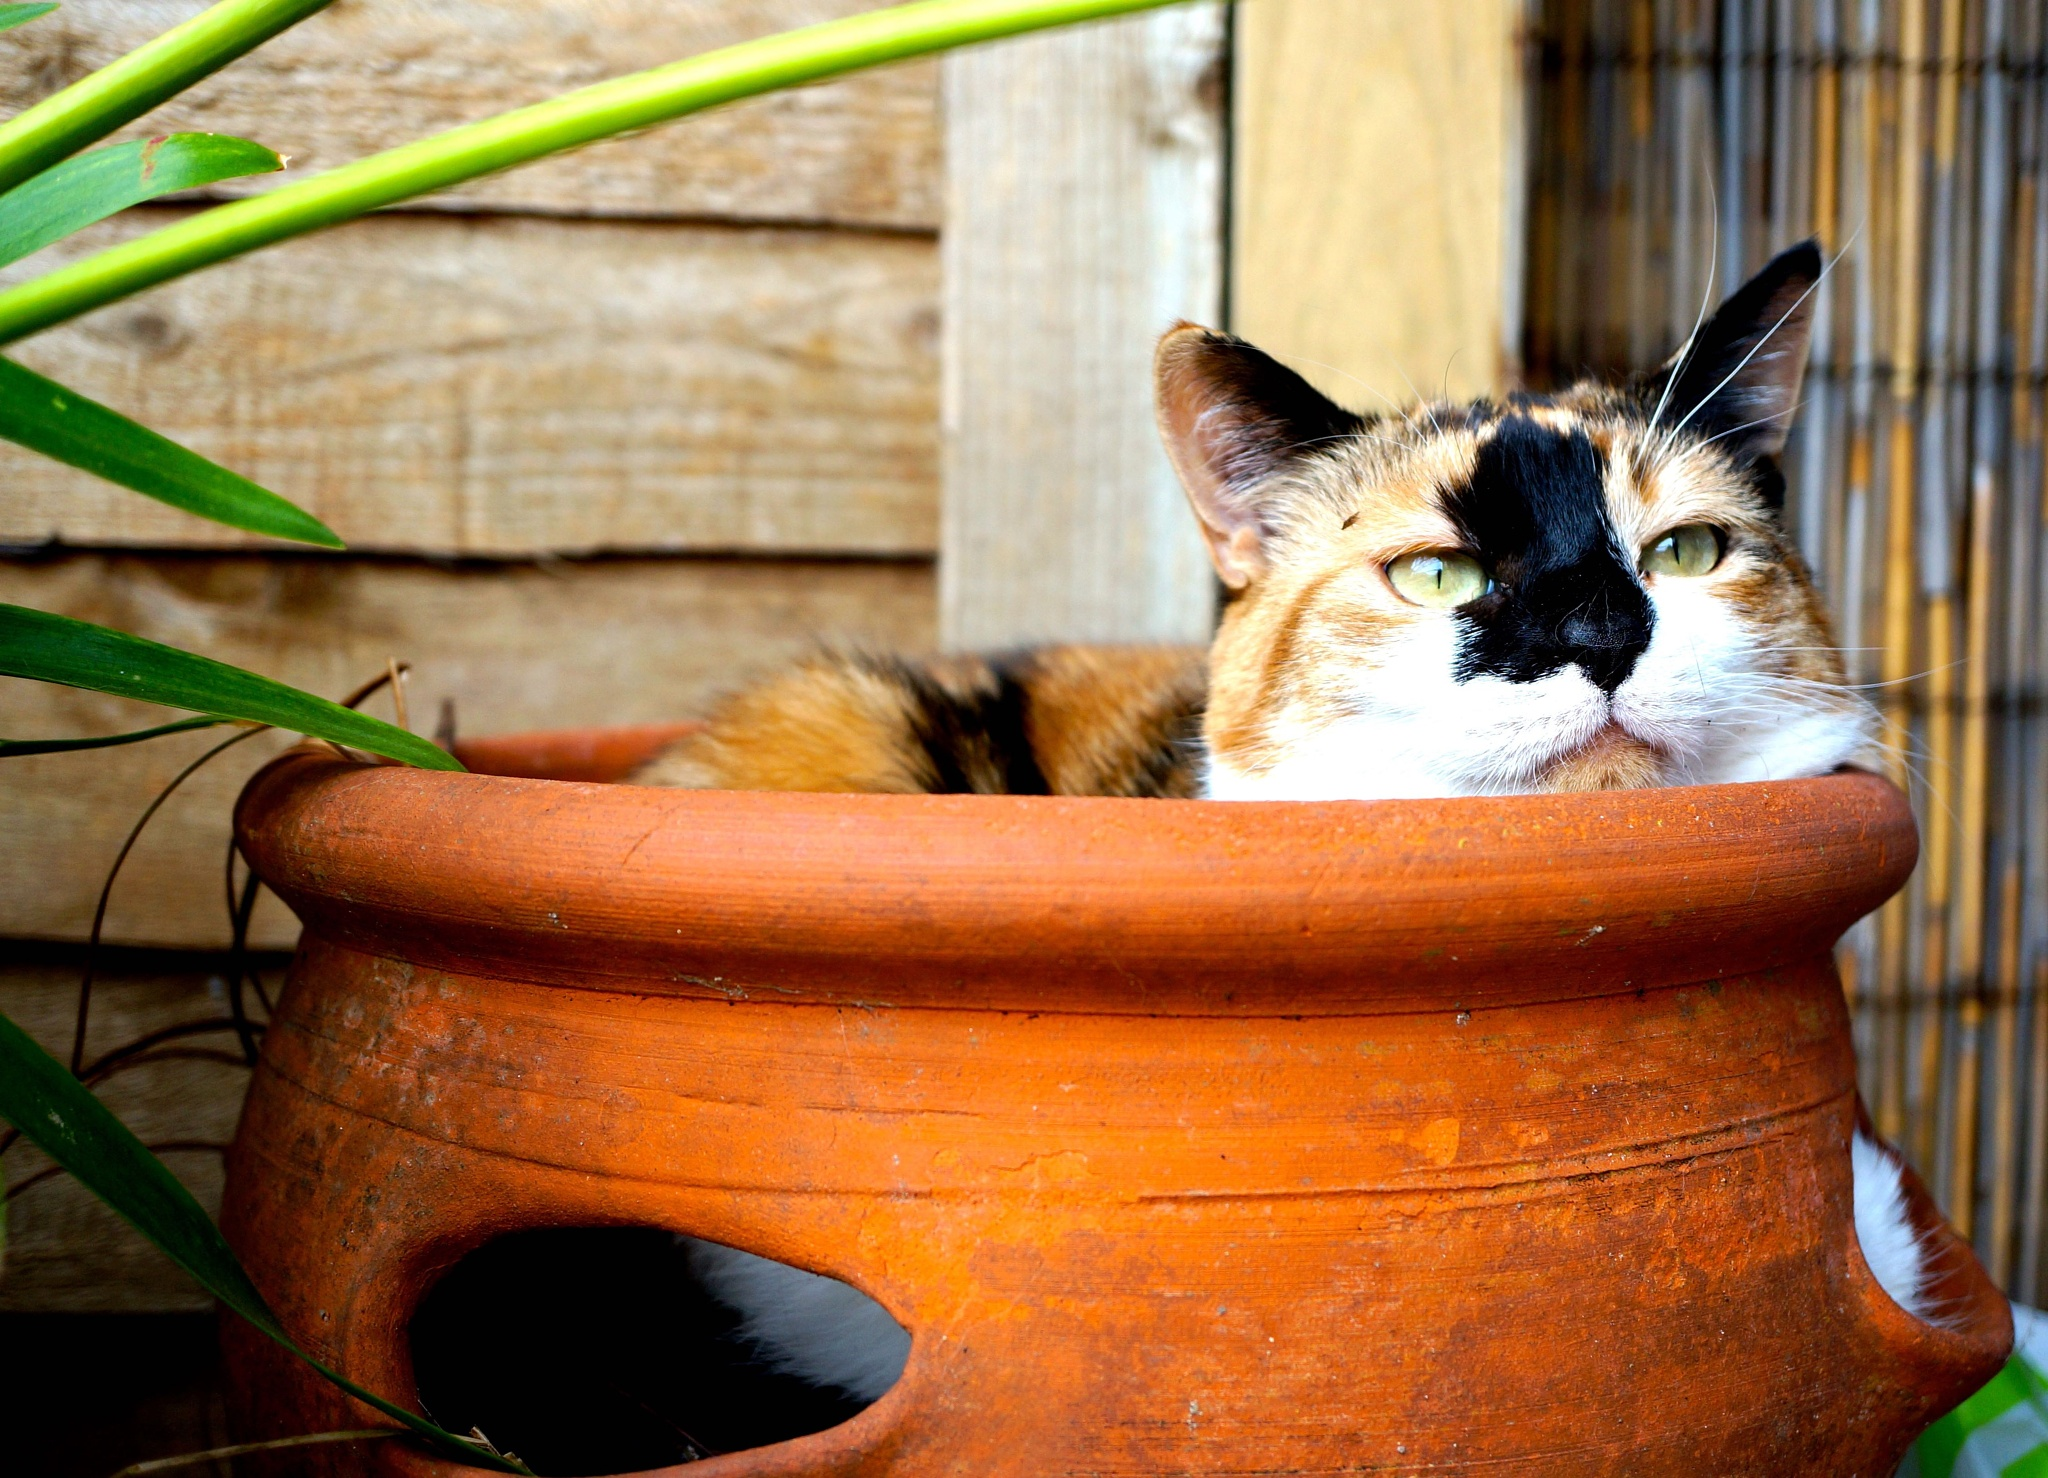 Cat in a Strawberry Pot by emsgems